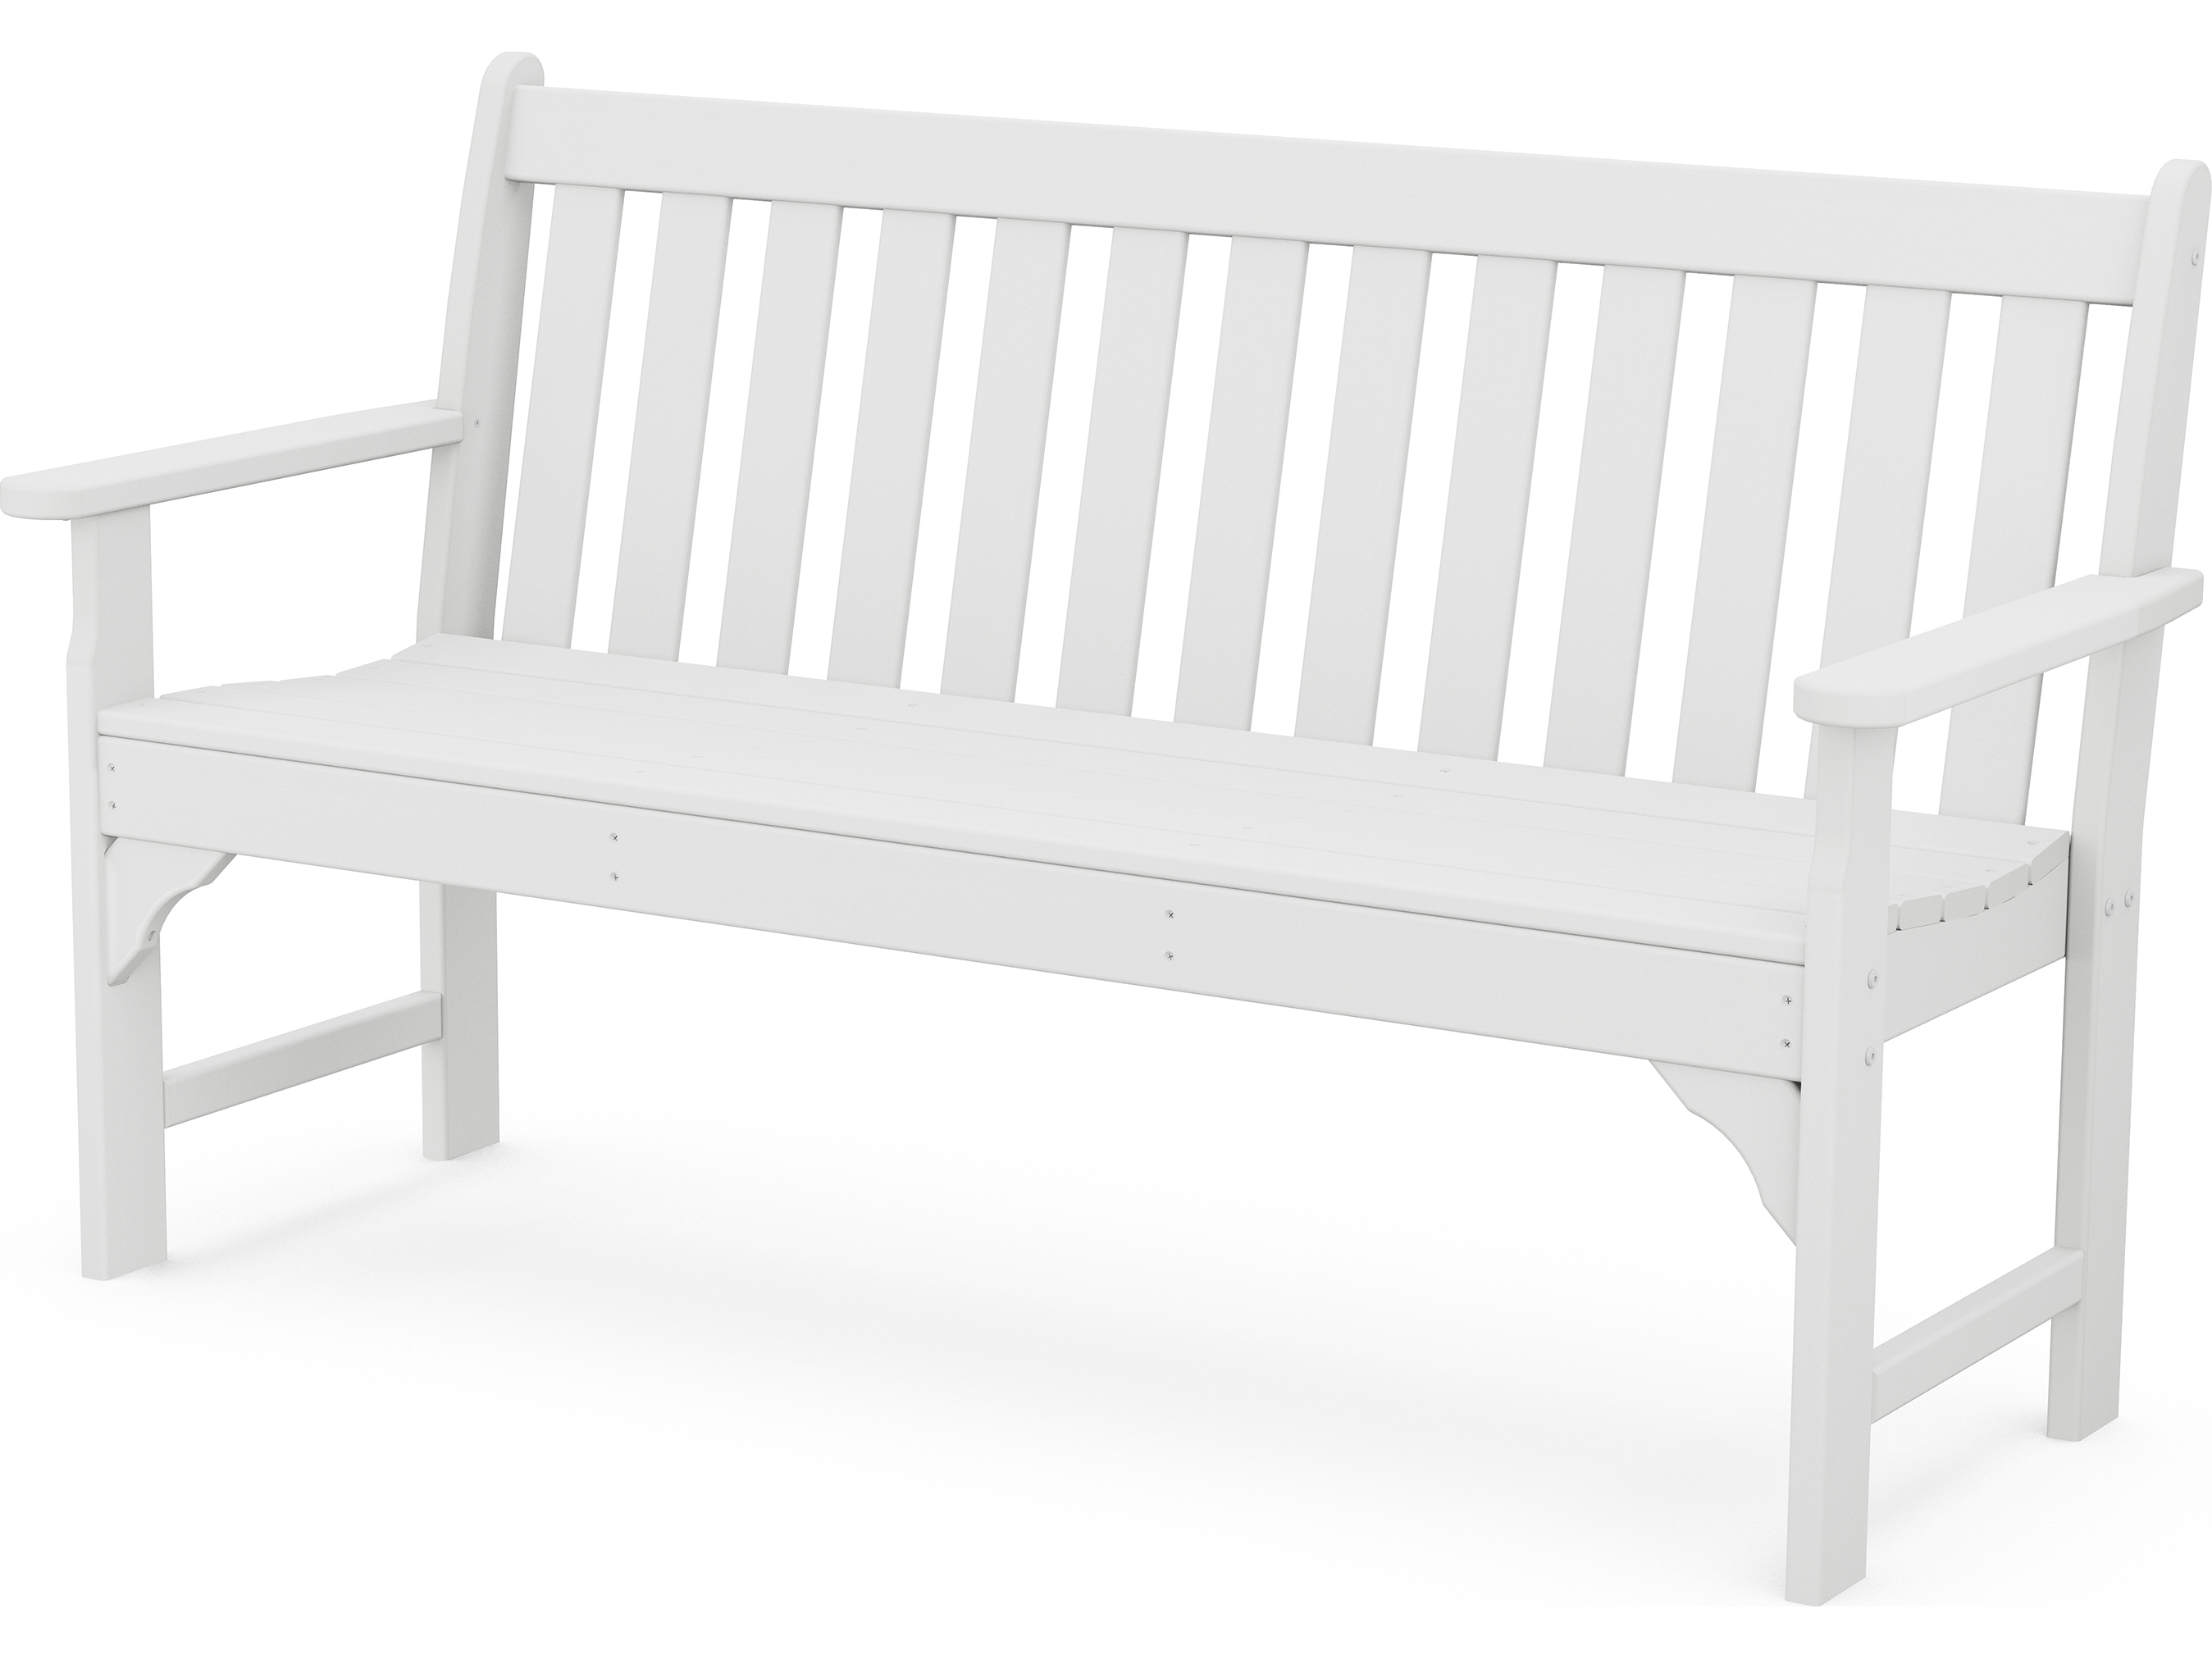 bench recycled furniture lumber size benches upf index plastic